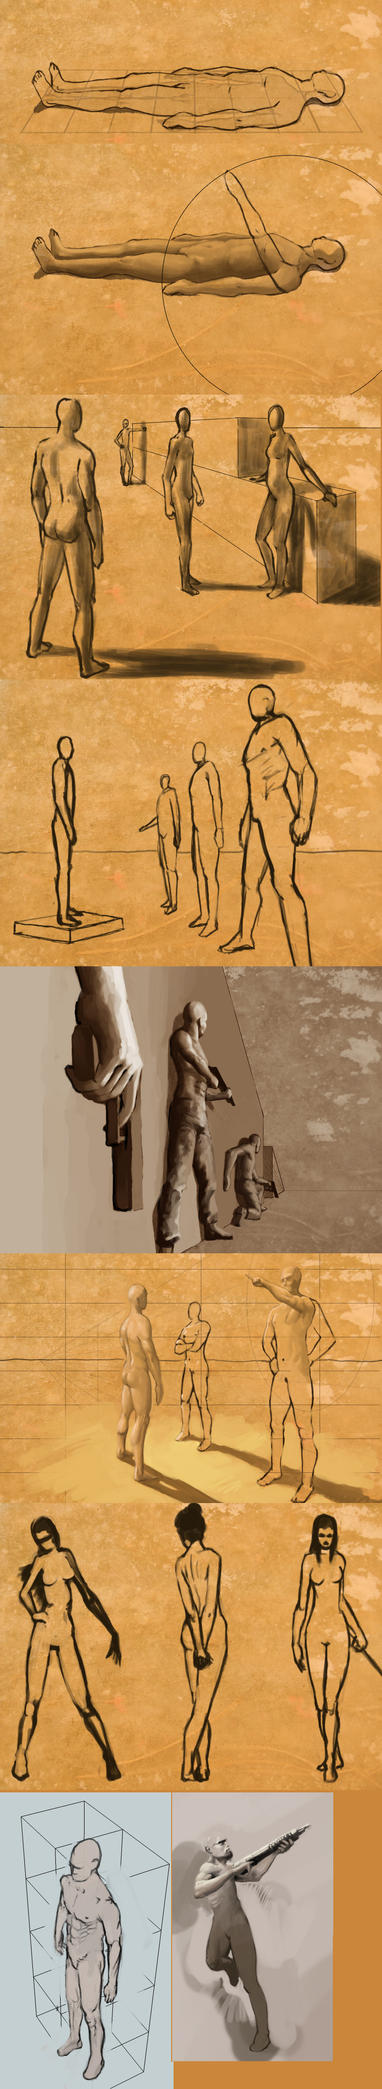 figure studies by EthicallyChallenged